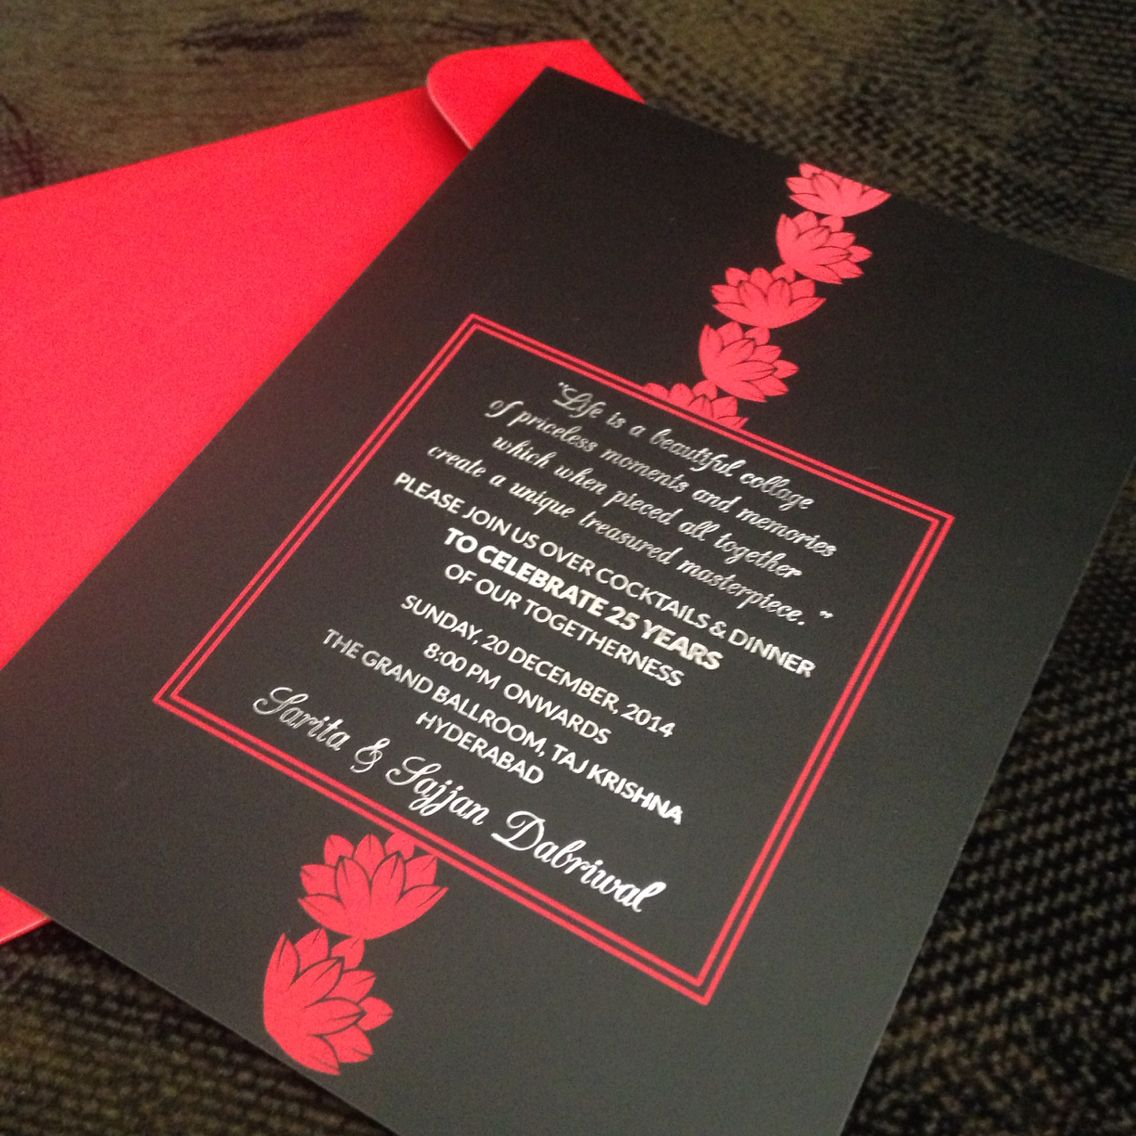 lotus flower wedding invitations%0A    anniversary  invitation  Theme black and red  Modern take on  lotus with